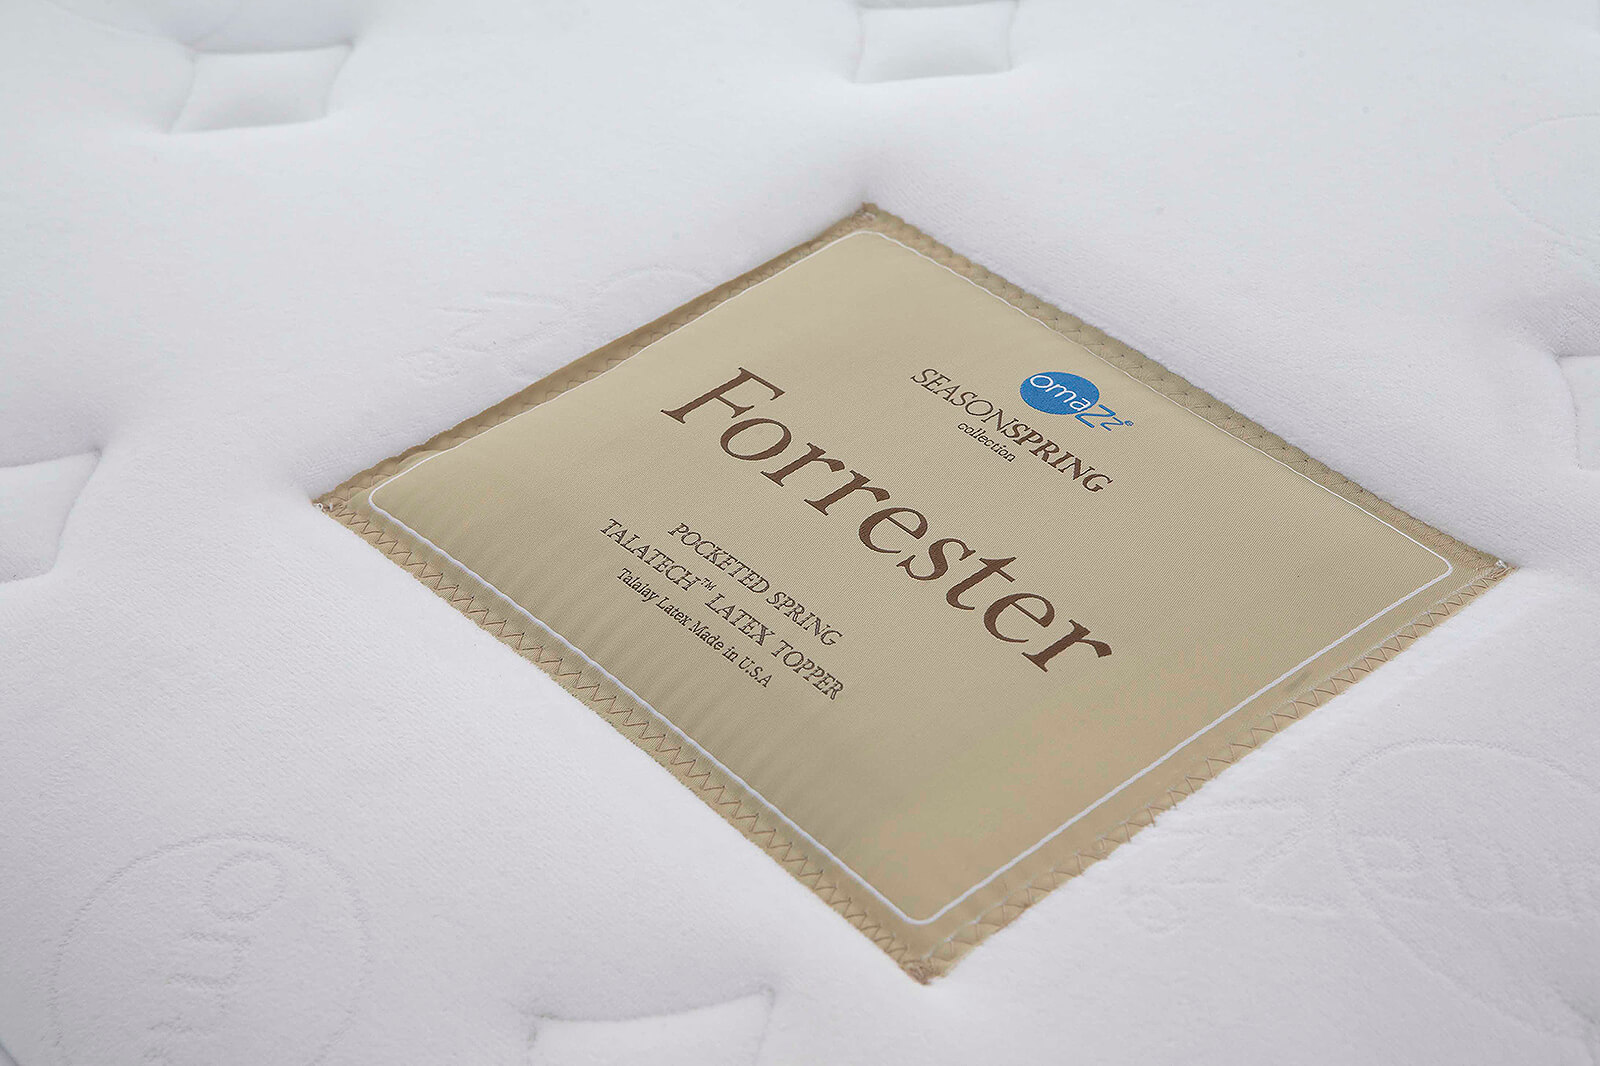 Omazz Mattress Forrester